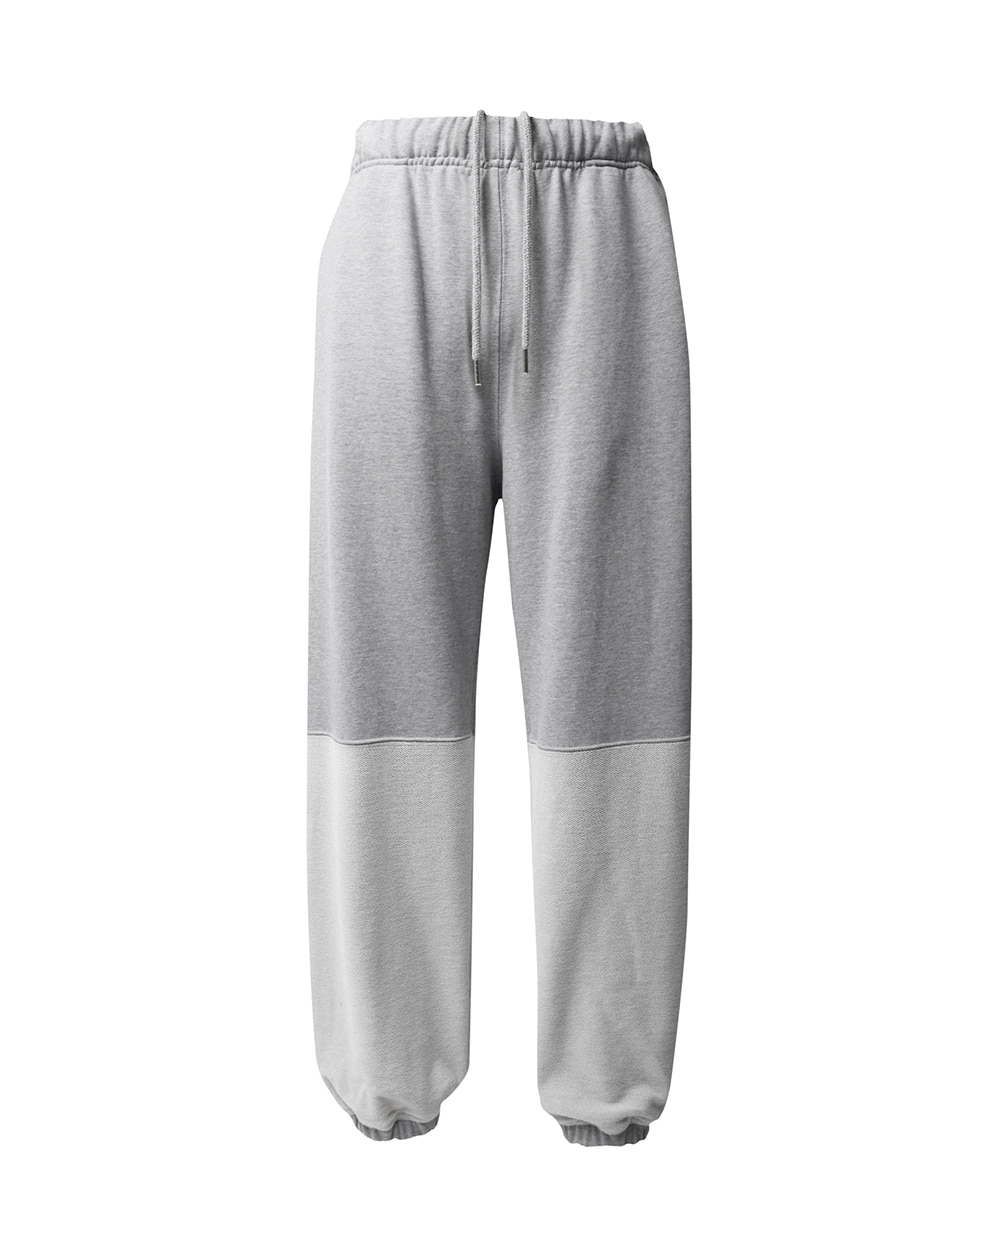 ATE STUDIOS INSIDE-OUT SWEAT PANTS (Gray)